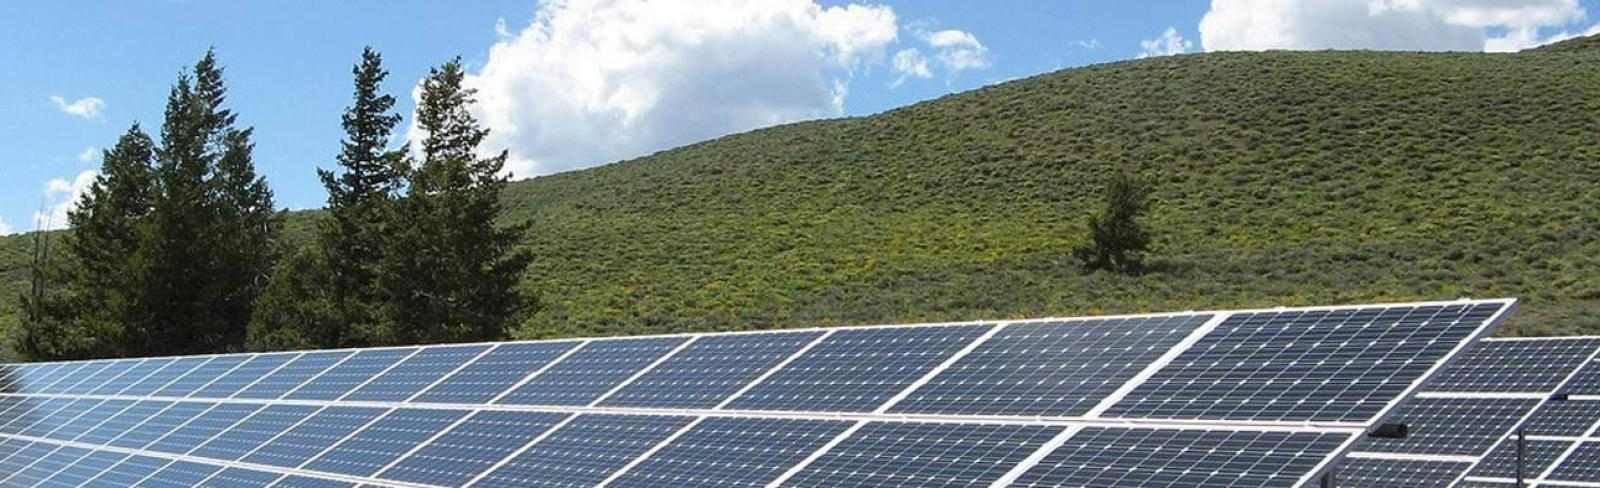 ESMAP Helps Scale up Renewable Energy Use in the Philippines